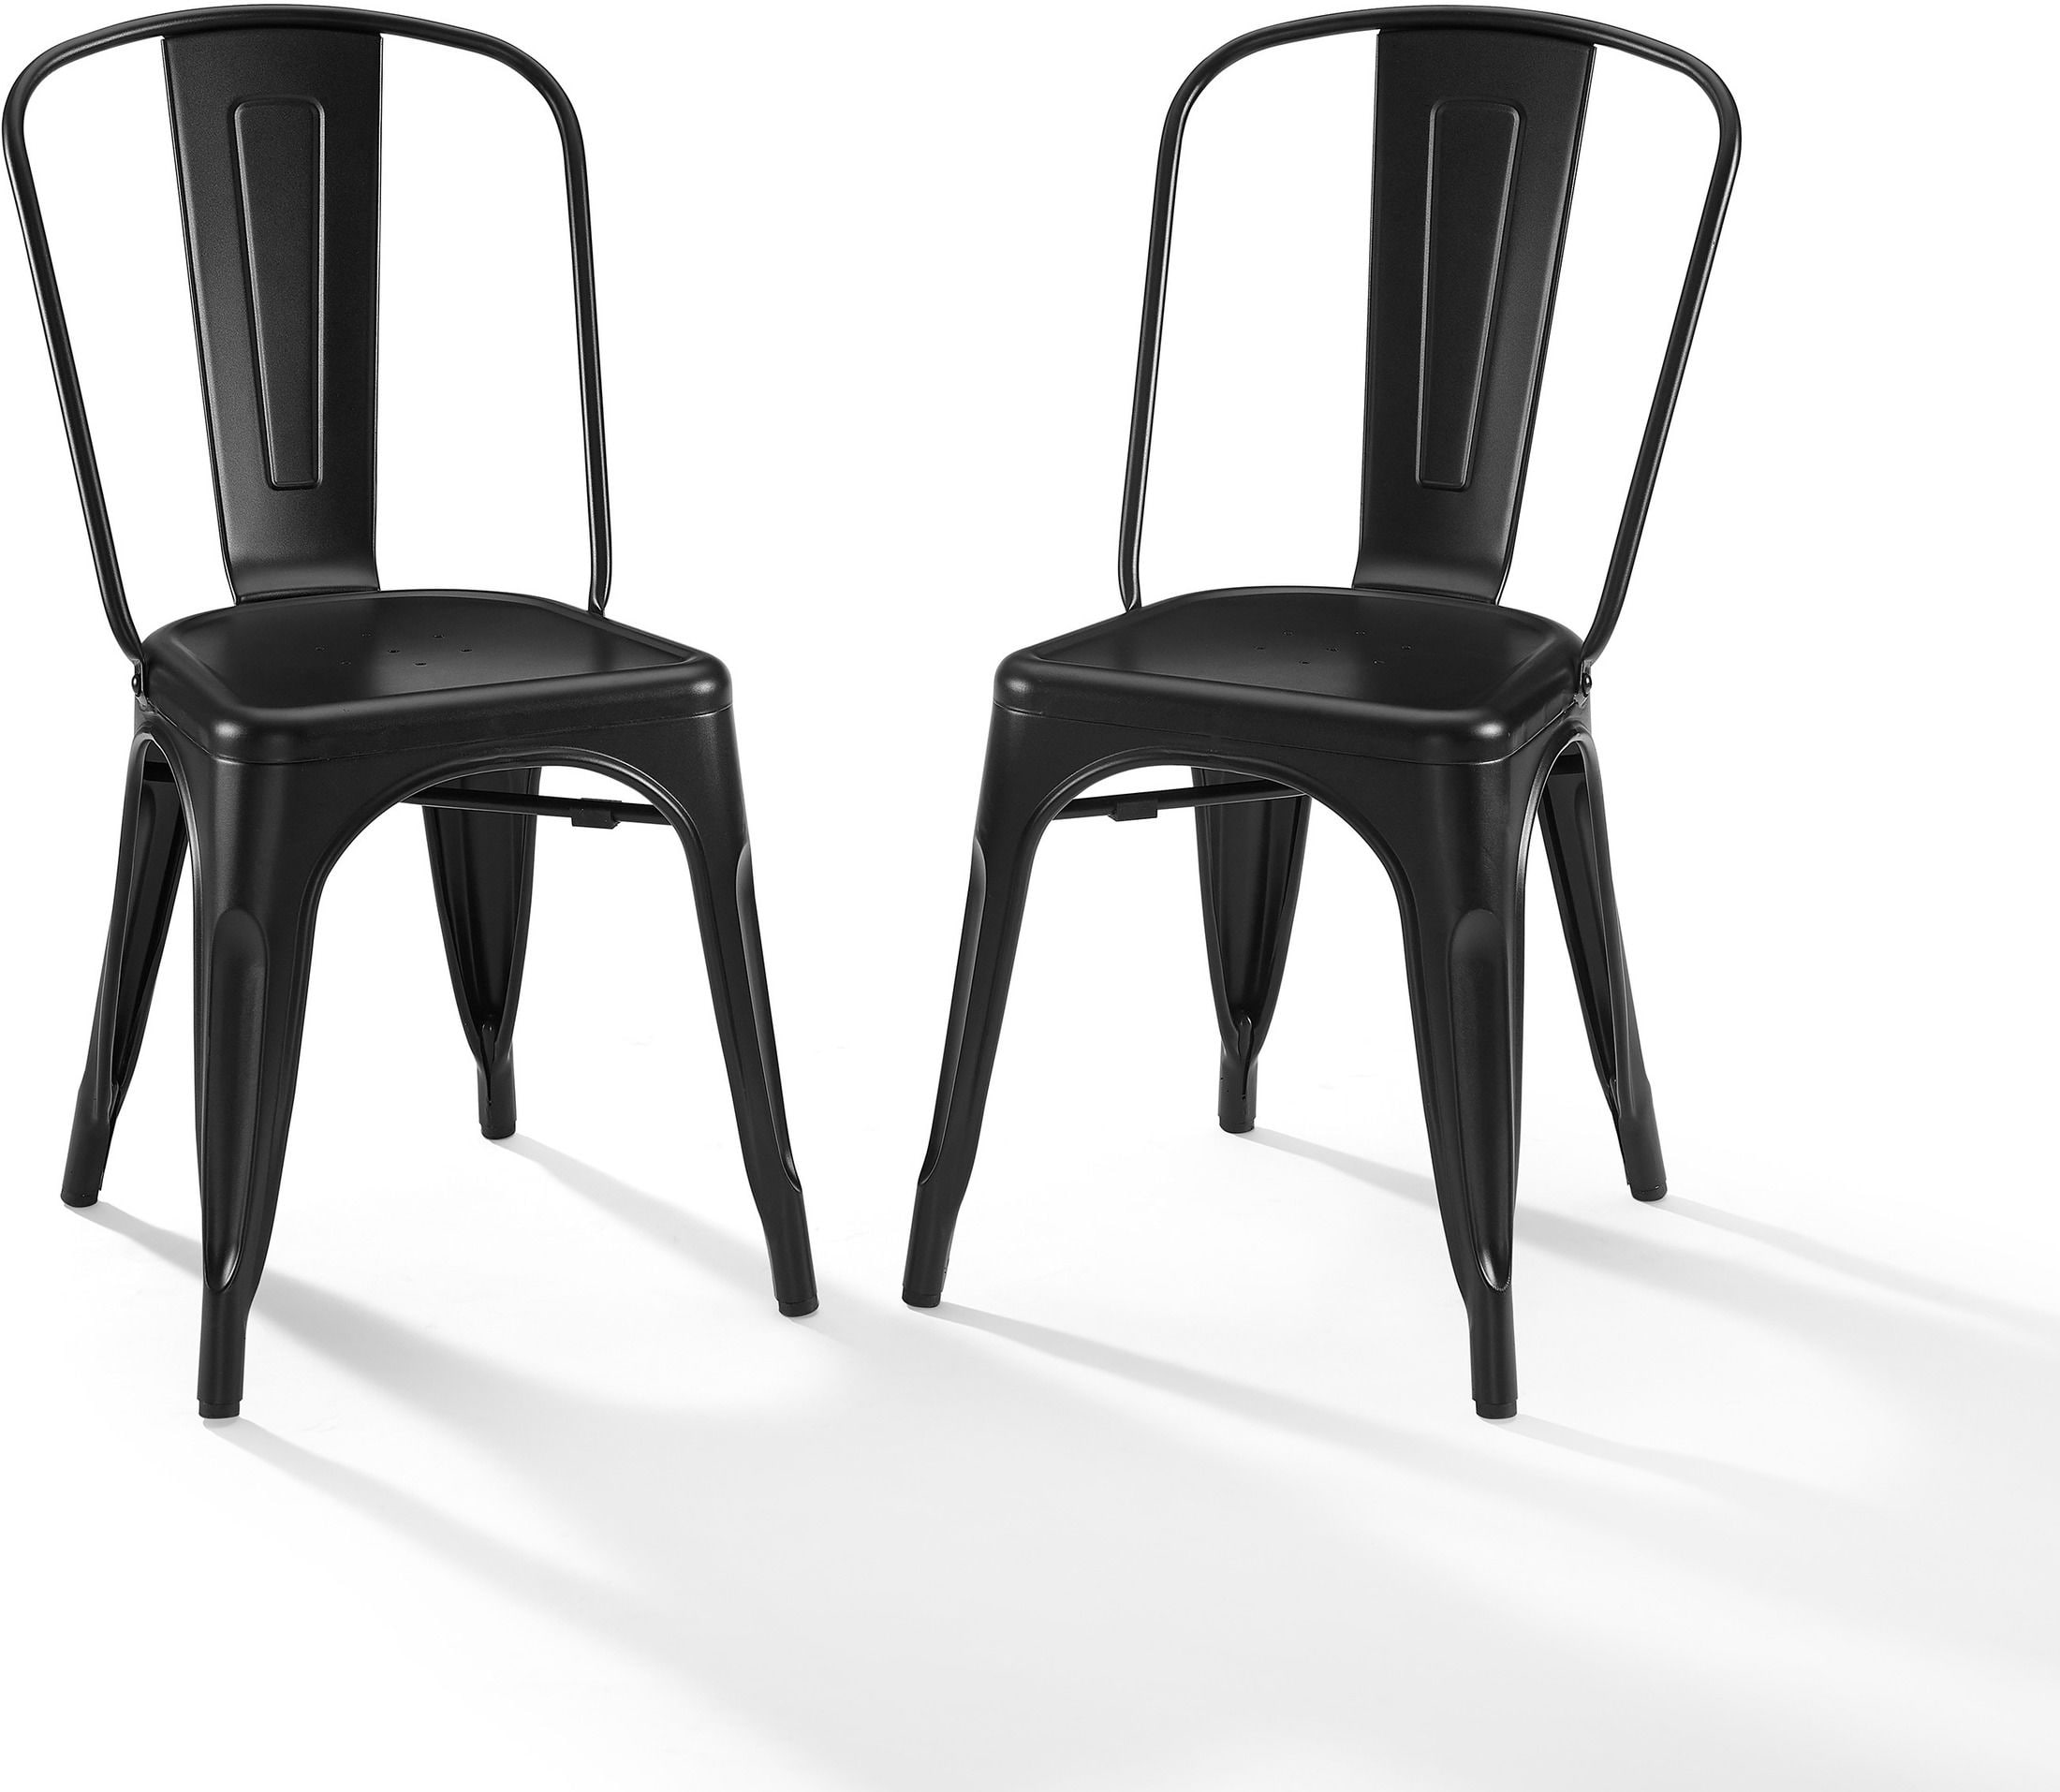 Dining Room Furniture - Tori Set of 2 Chairs